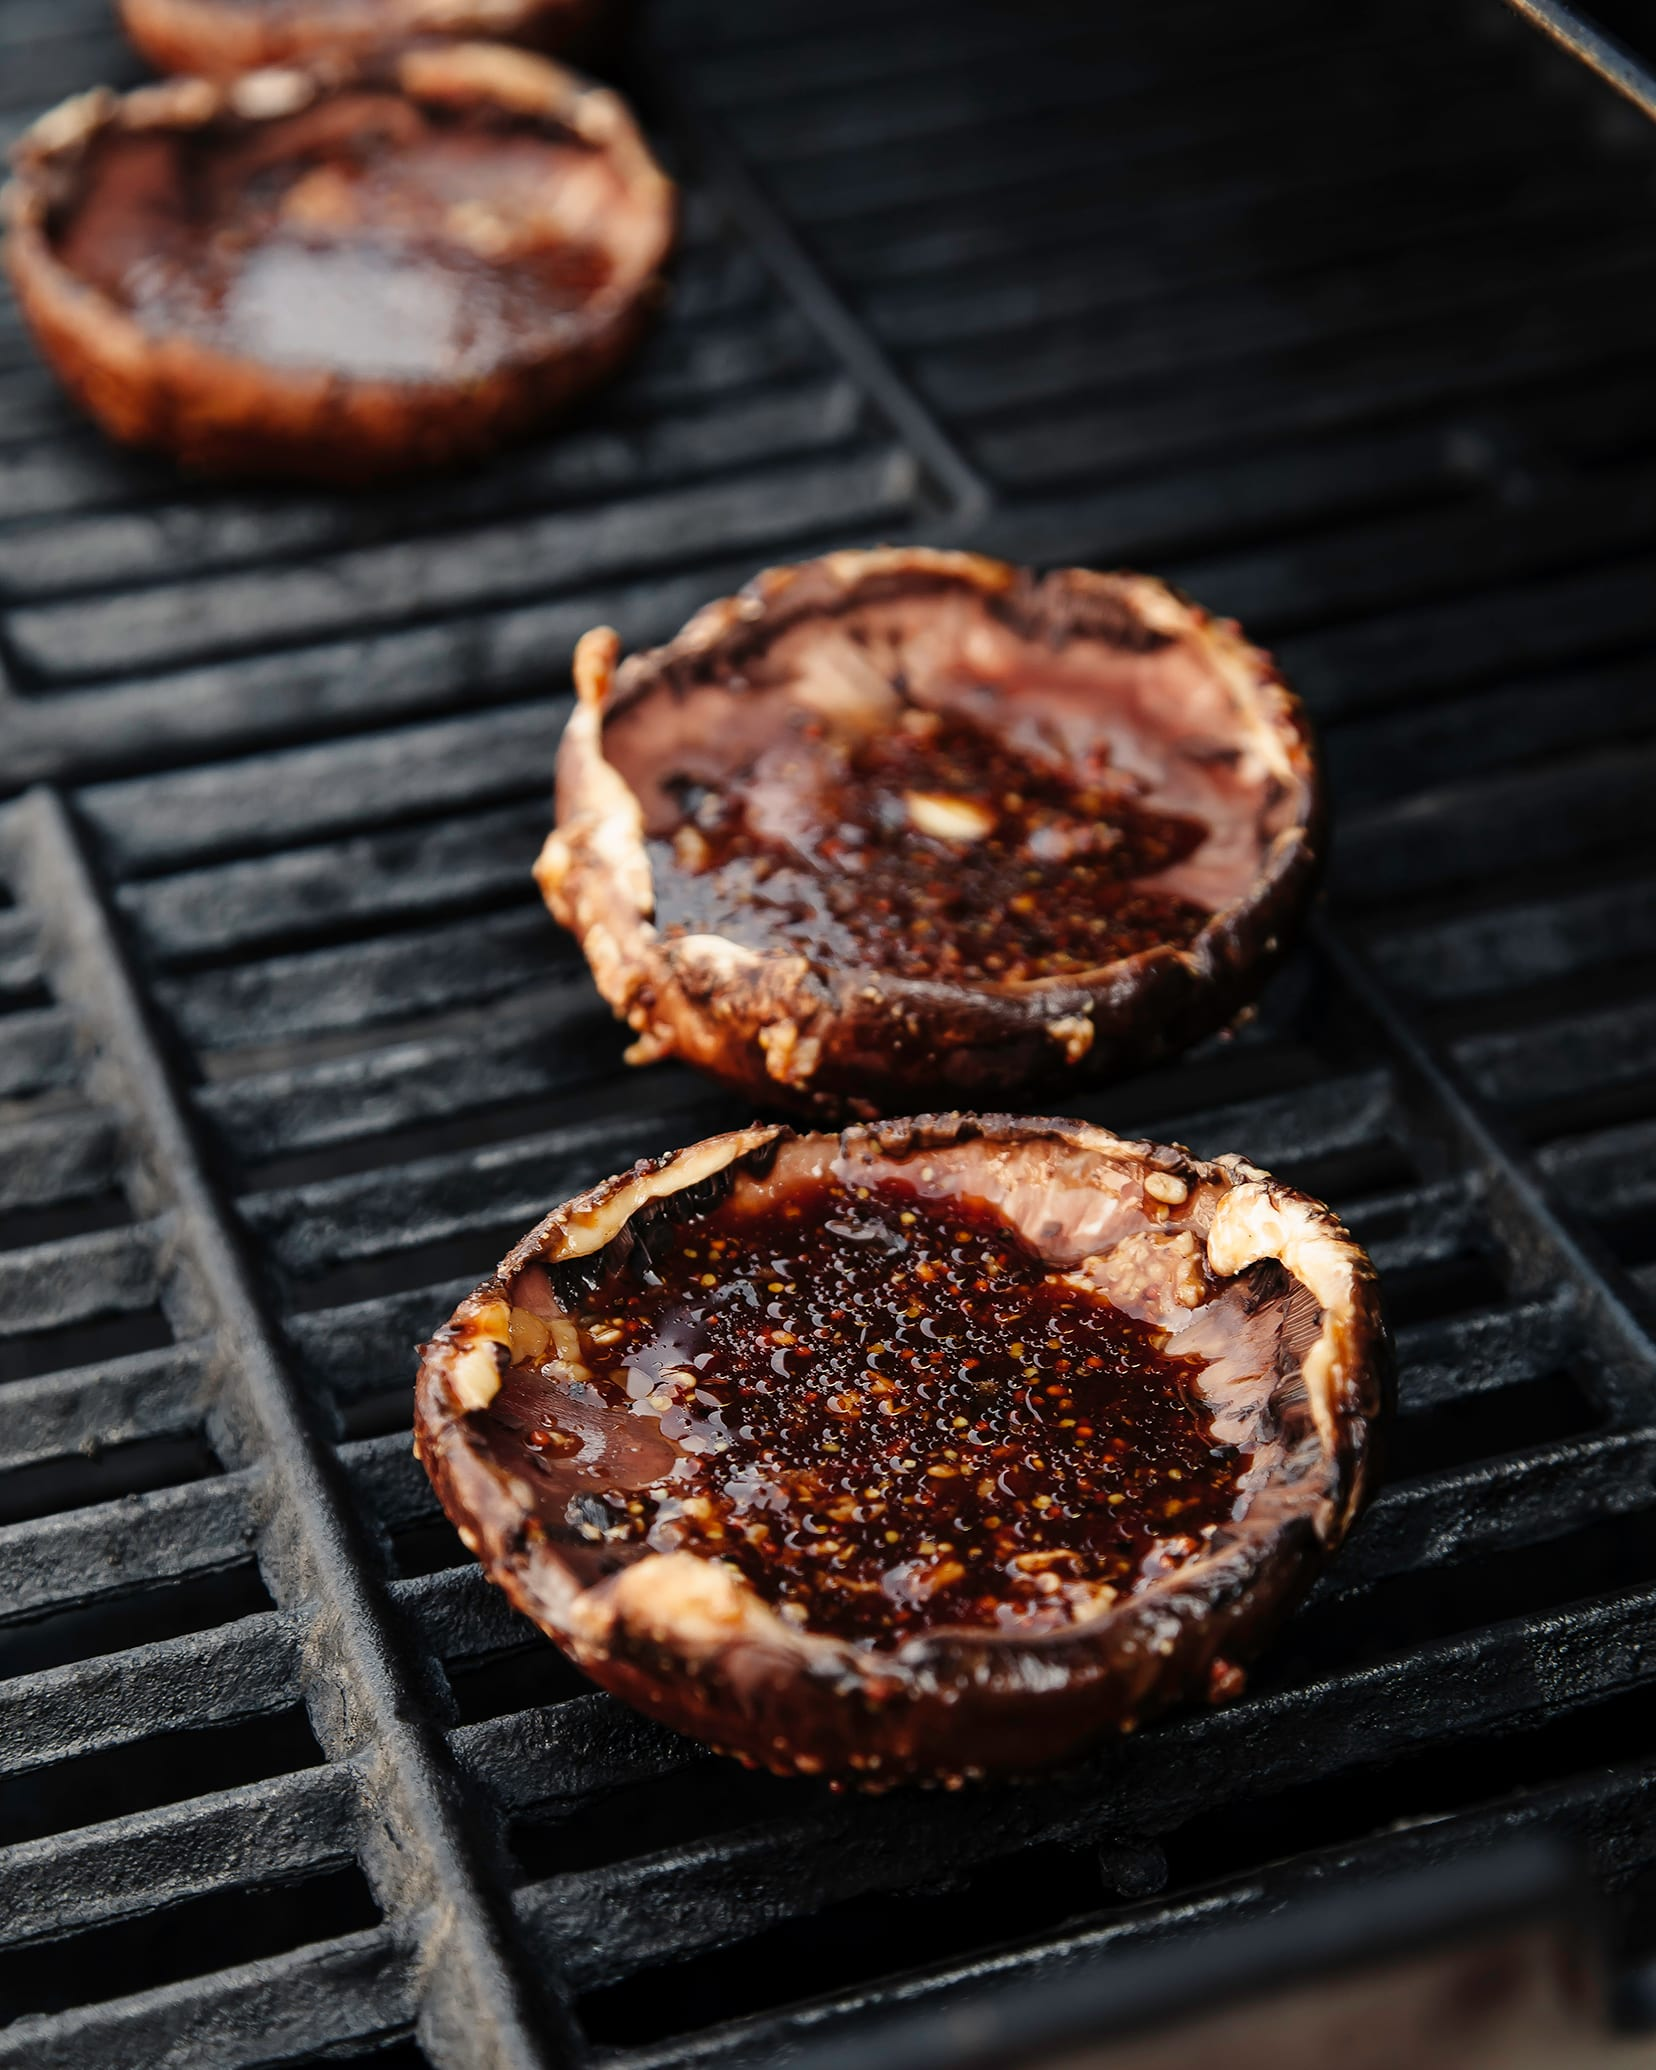 Image shows marinated portobello mushrooms on a grill outdoors.